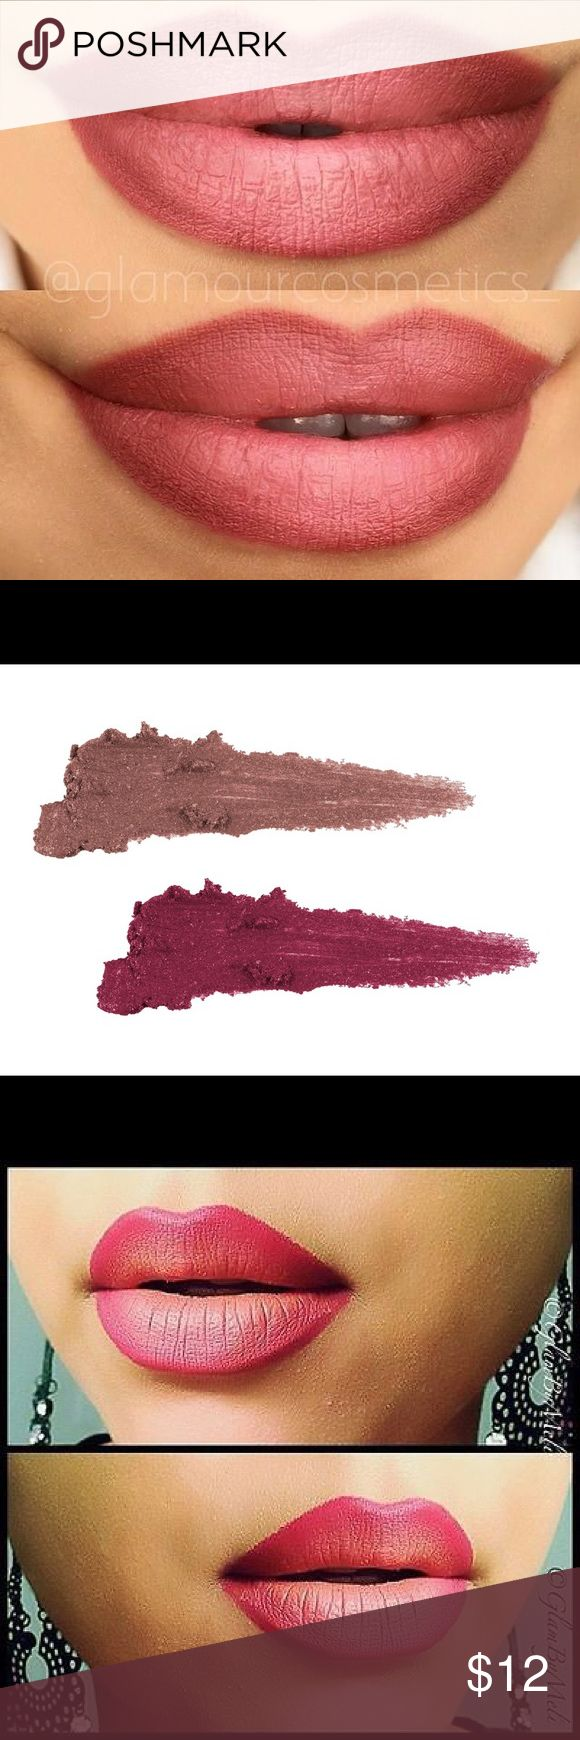 Ombre Lip Duo by NYX Professional Makeup #13